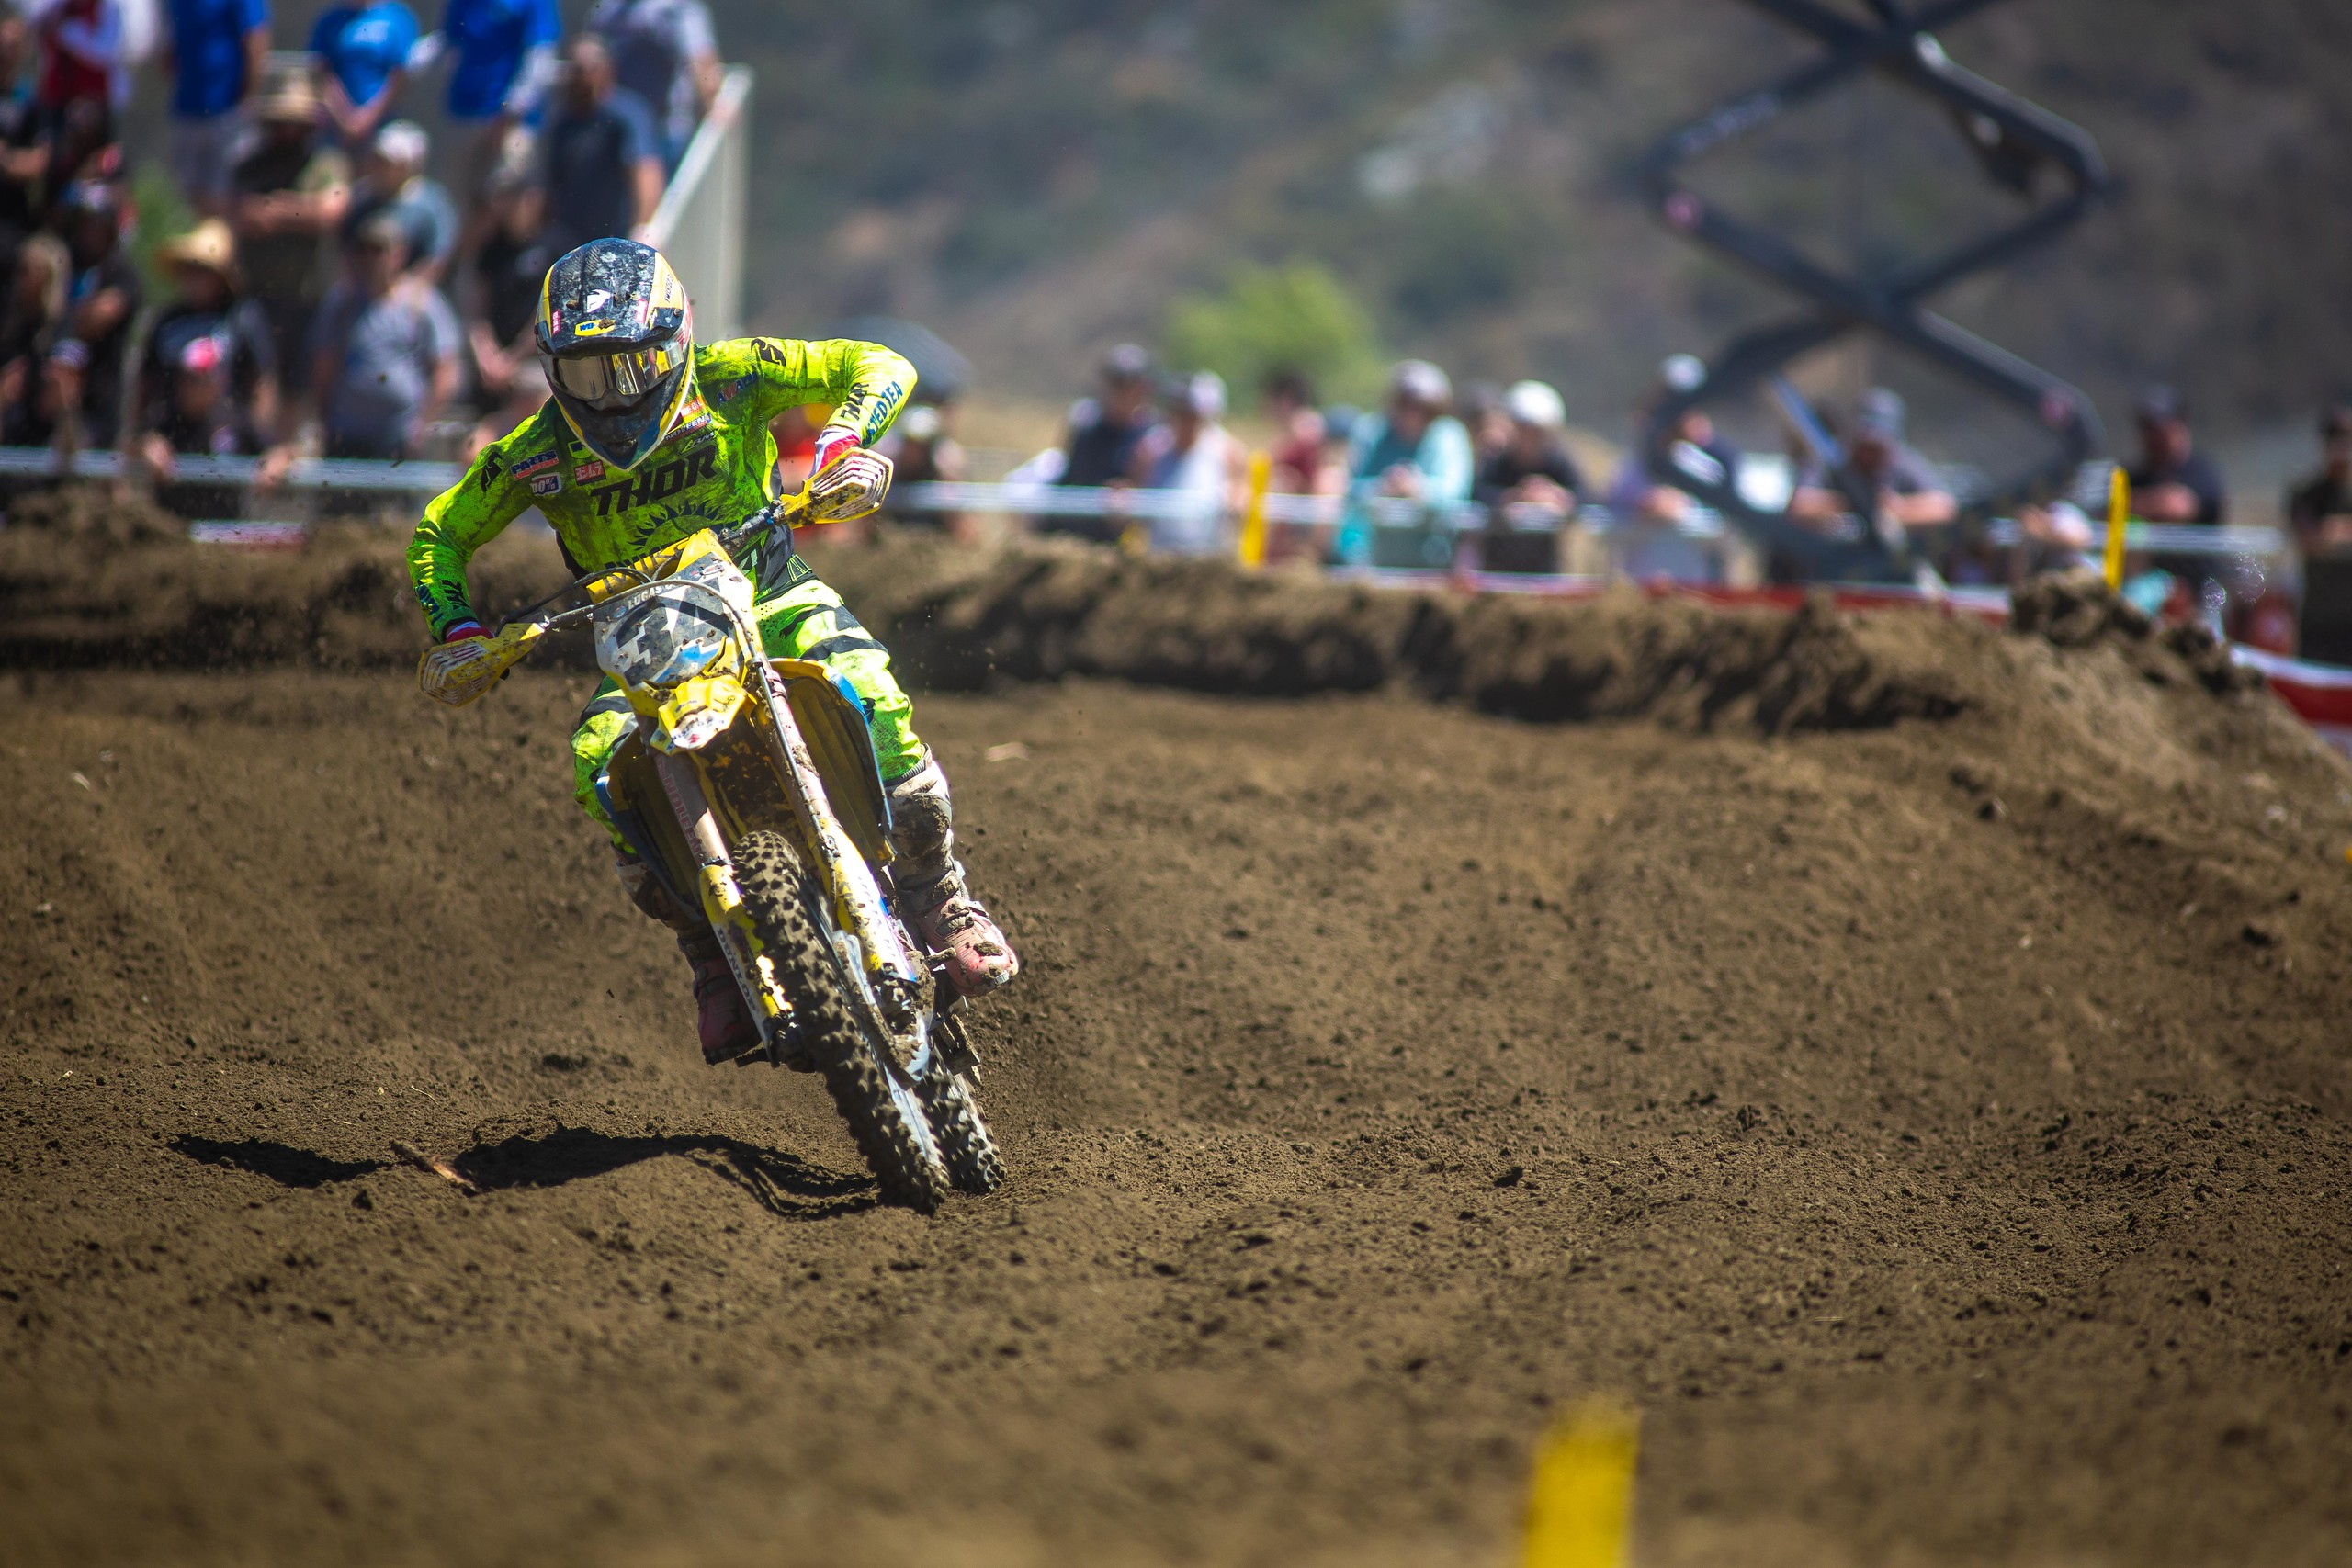 Max Anstie (34) kicked off his 2021 motocross season with two solid performances at Pala